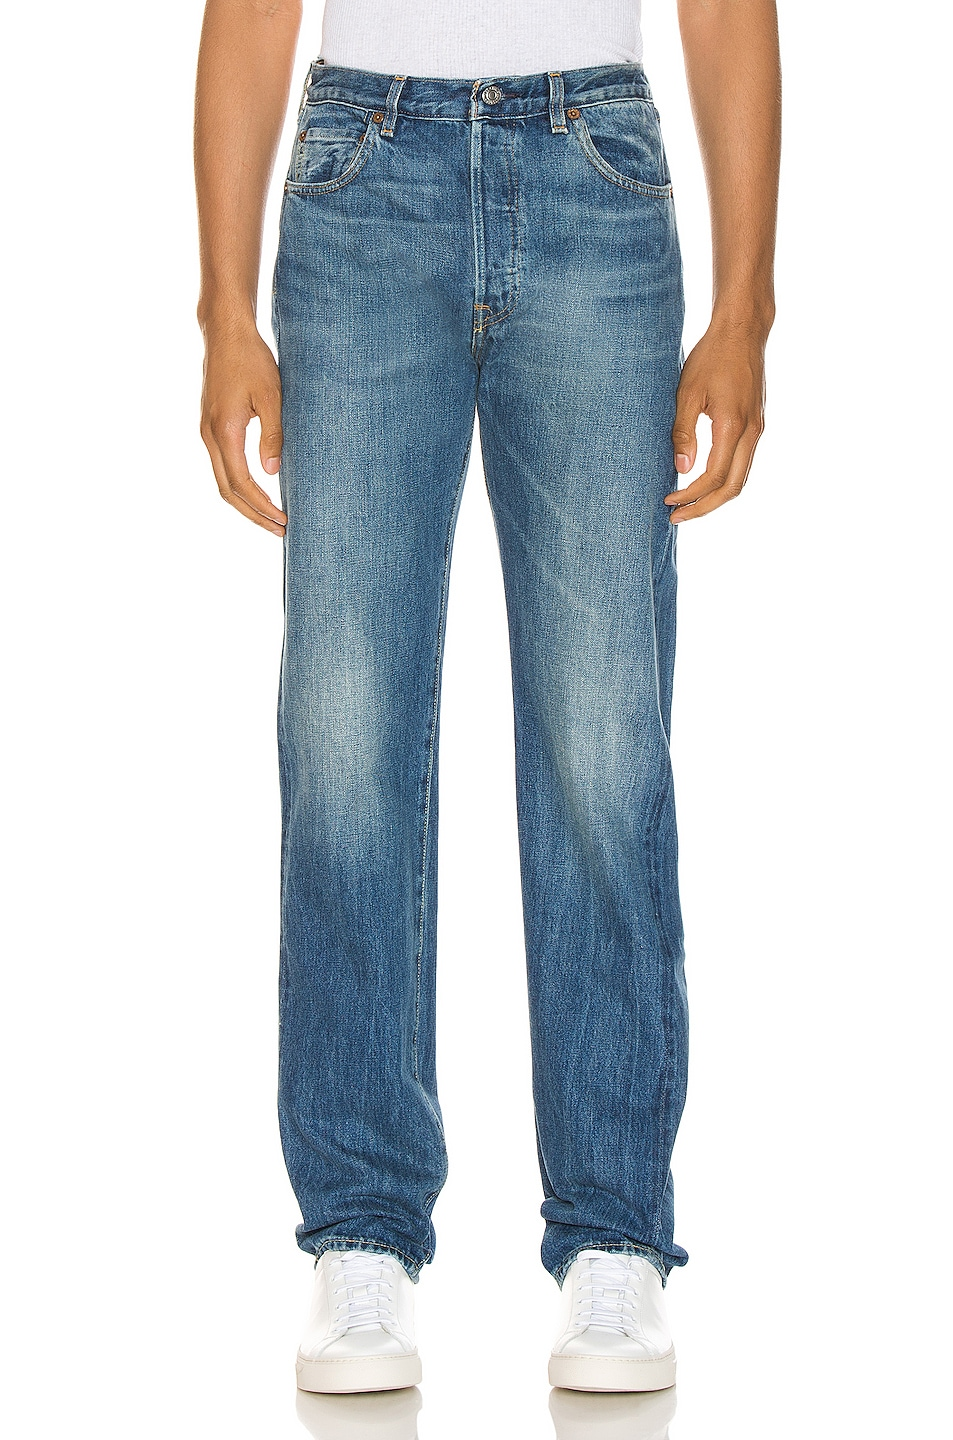 Image 1 of LEVI'S Vintage Clothing 1966 501 Jeans in Ramblin Man